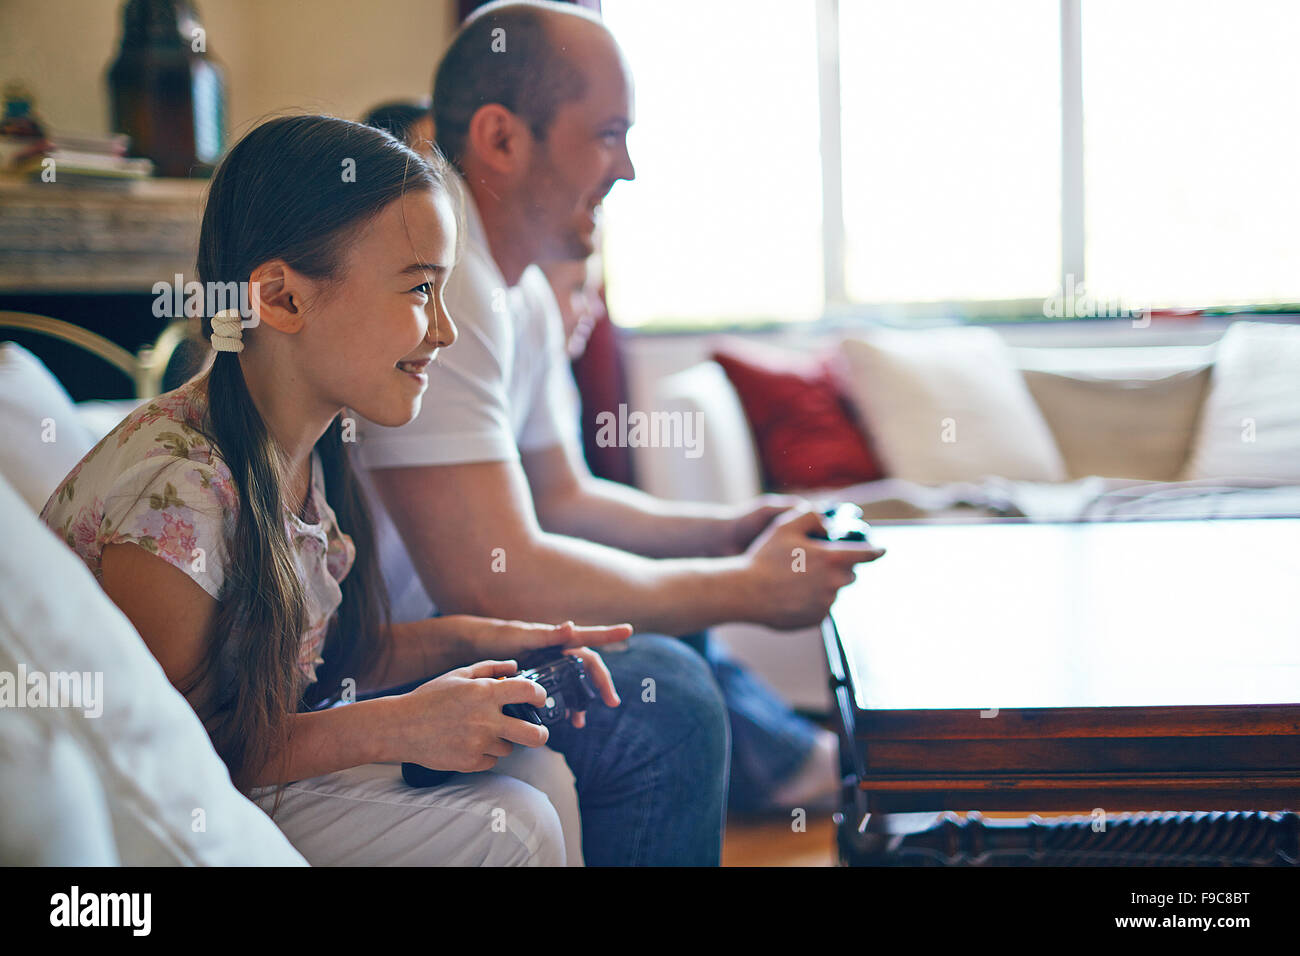 Smiling girl playing video games with her father - Stock Image